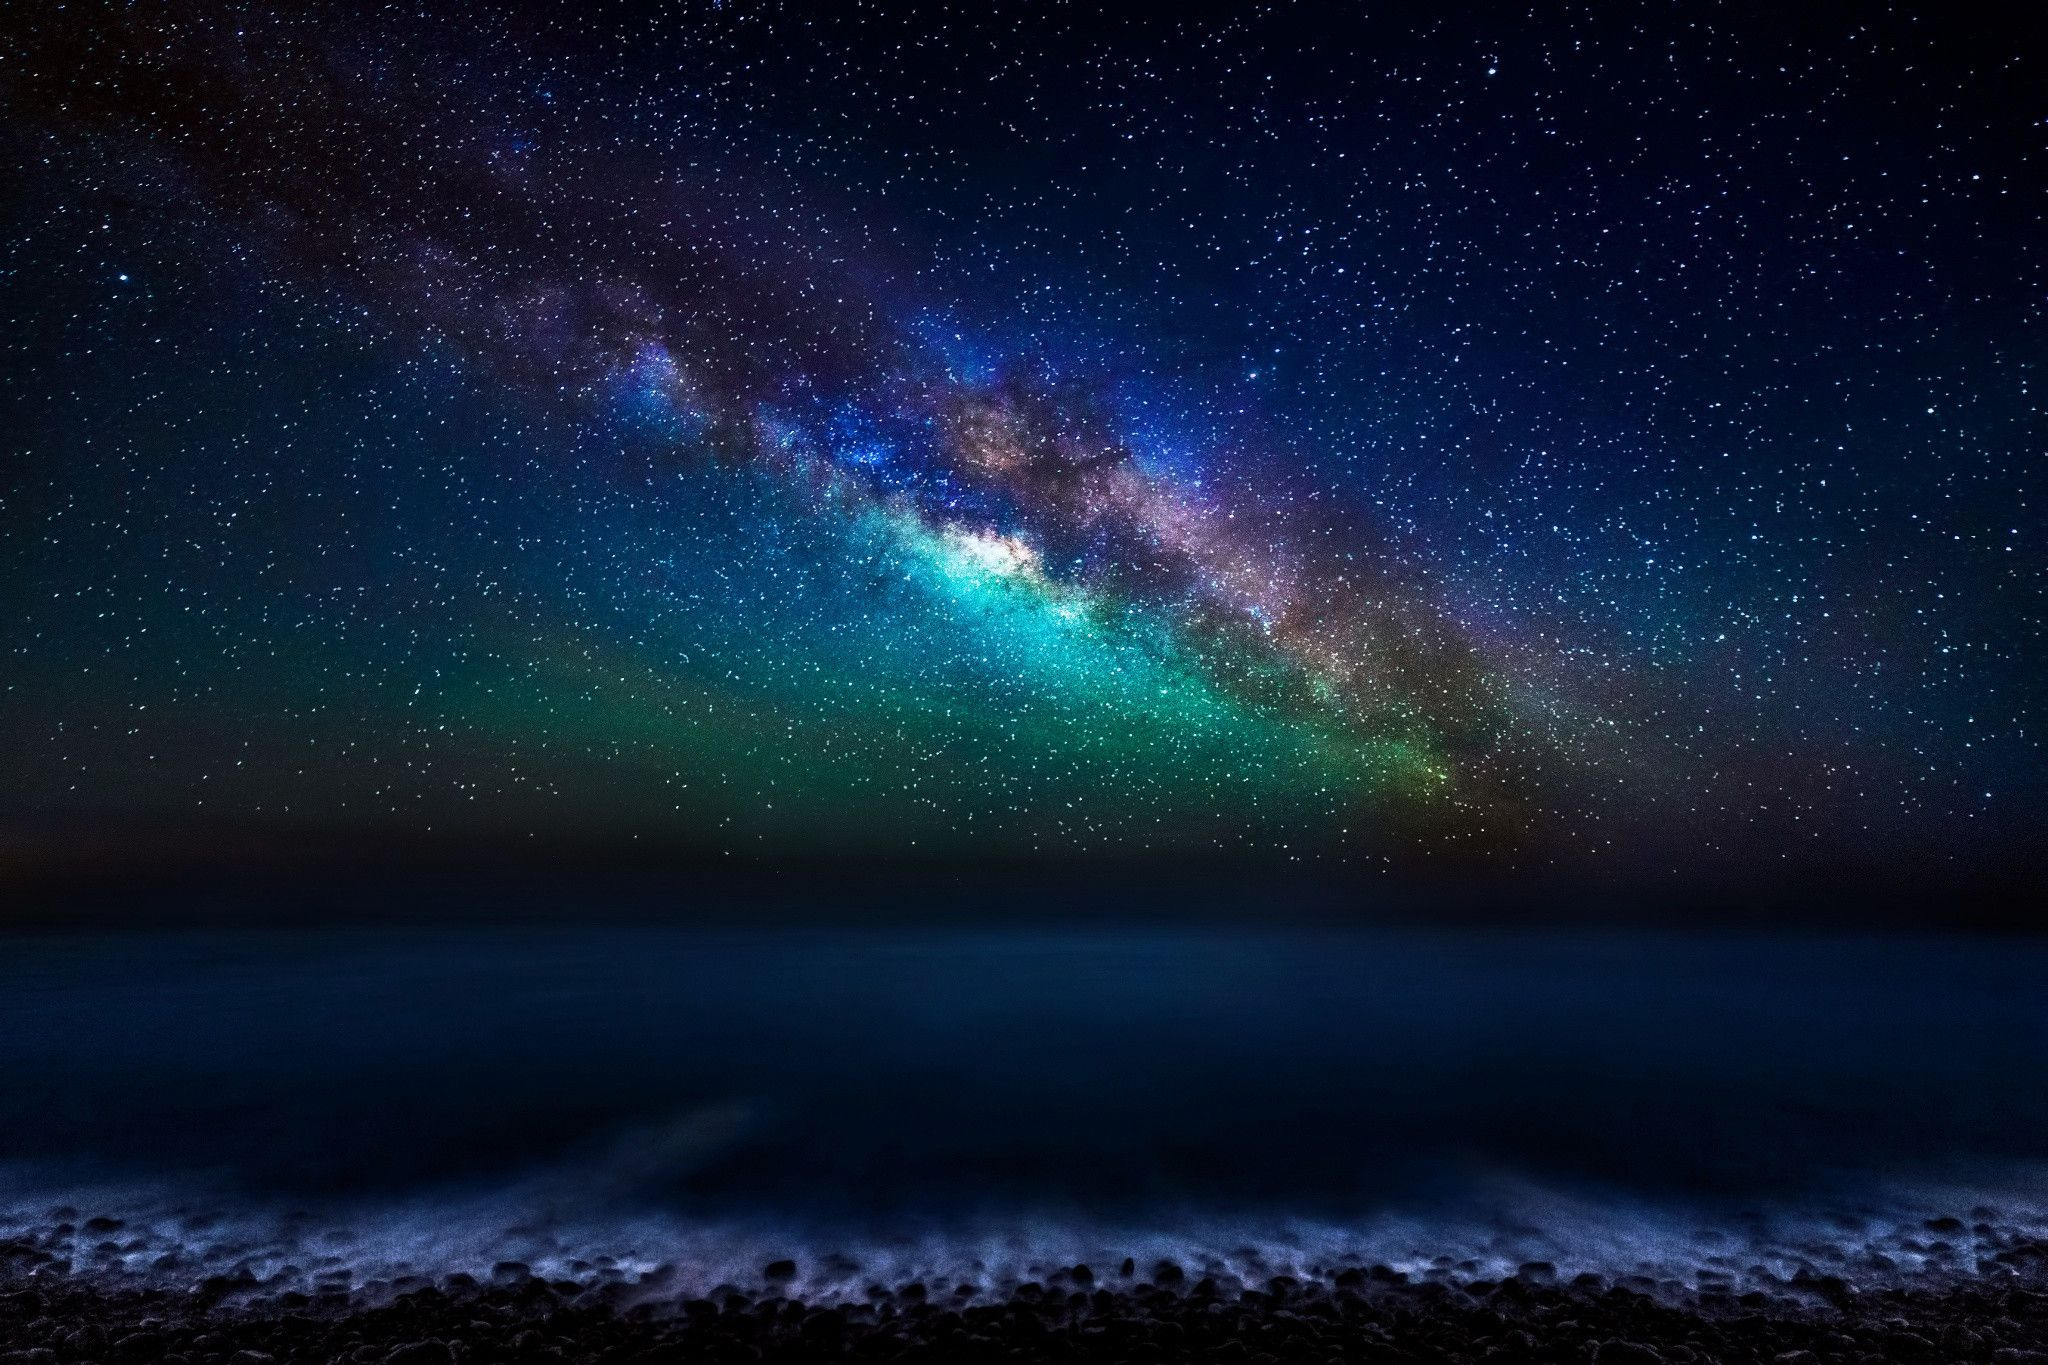 Ocean Night Sky Wallpapers Top Free Ocean Night Sky Backgrounds Wallpaperaccess